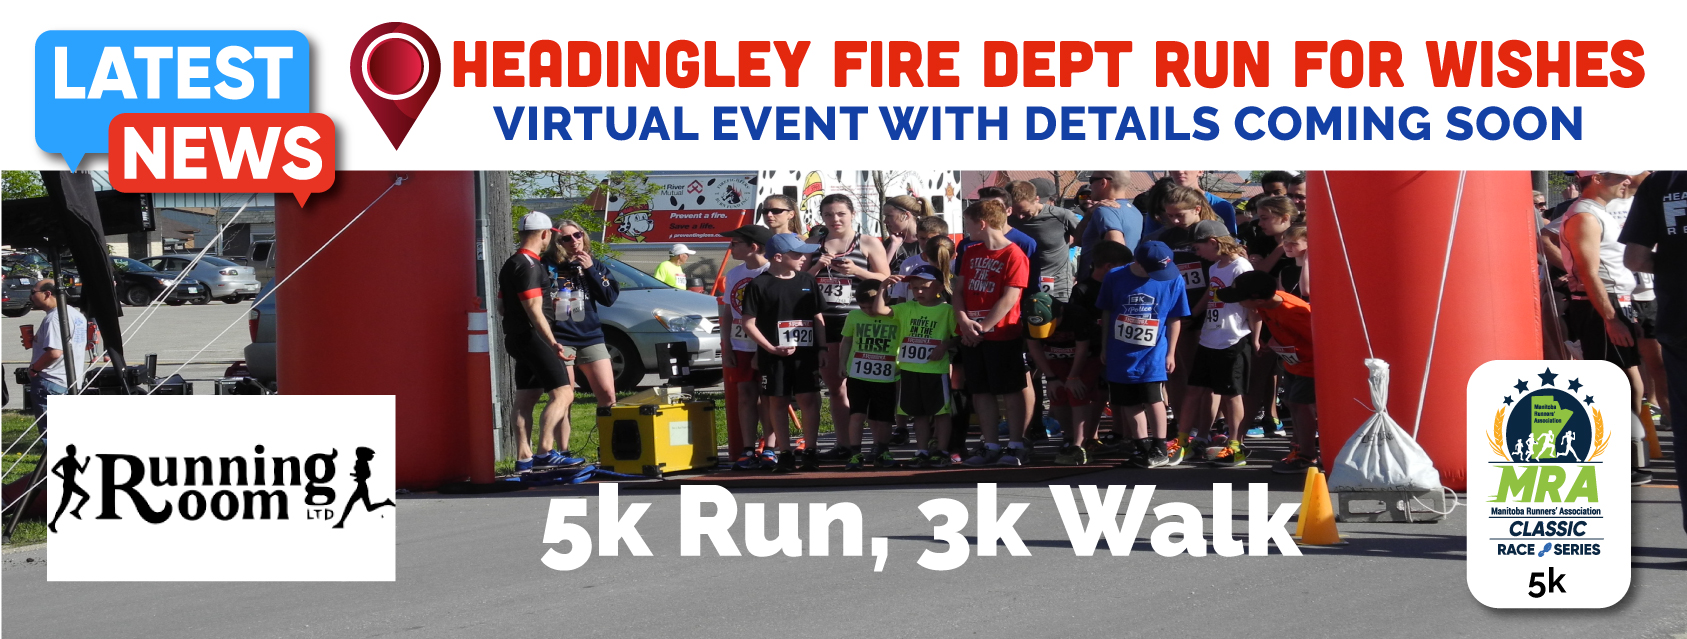 Headingley Fire Dept Run for Wishes  **VIRTUAL EVENT MAY 1-31**